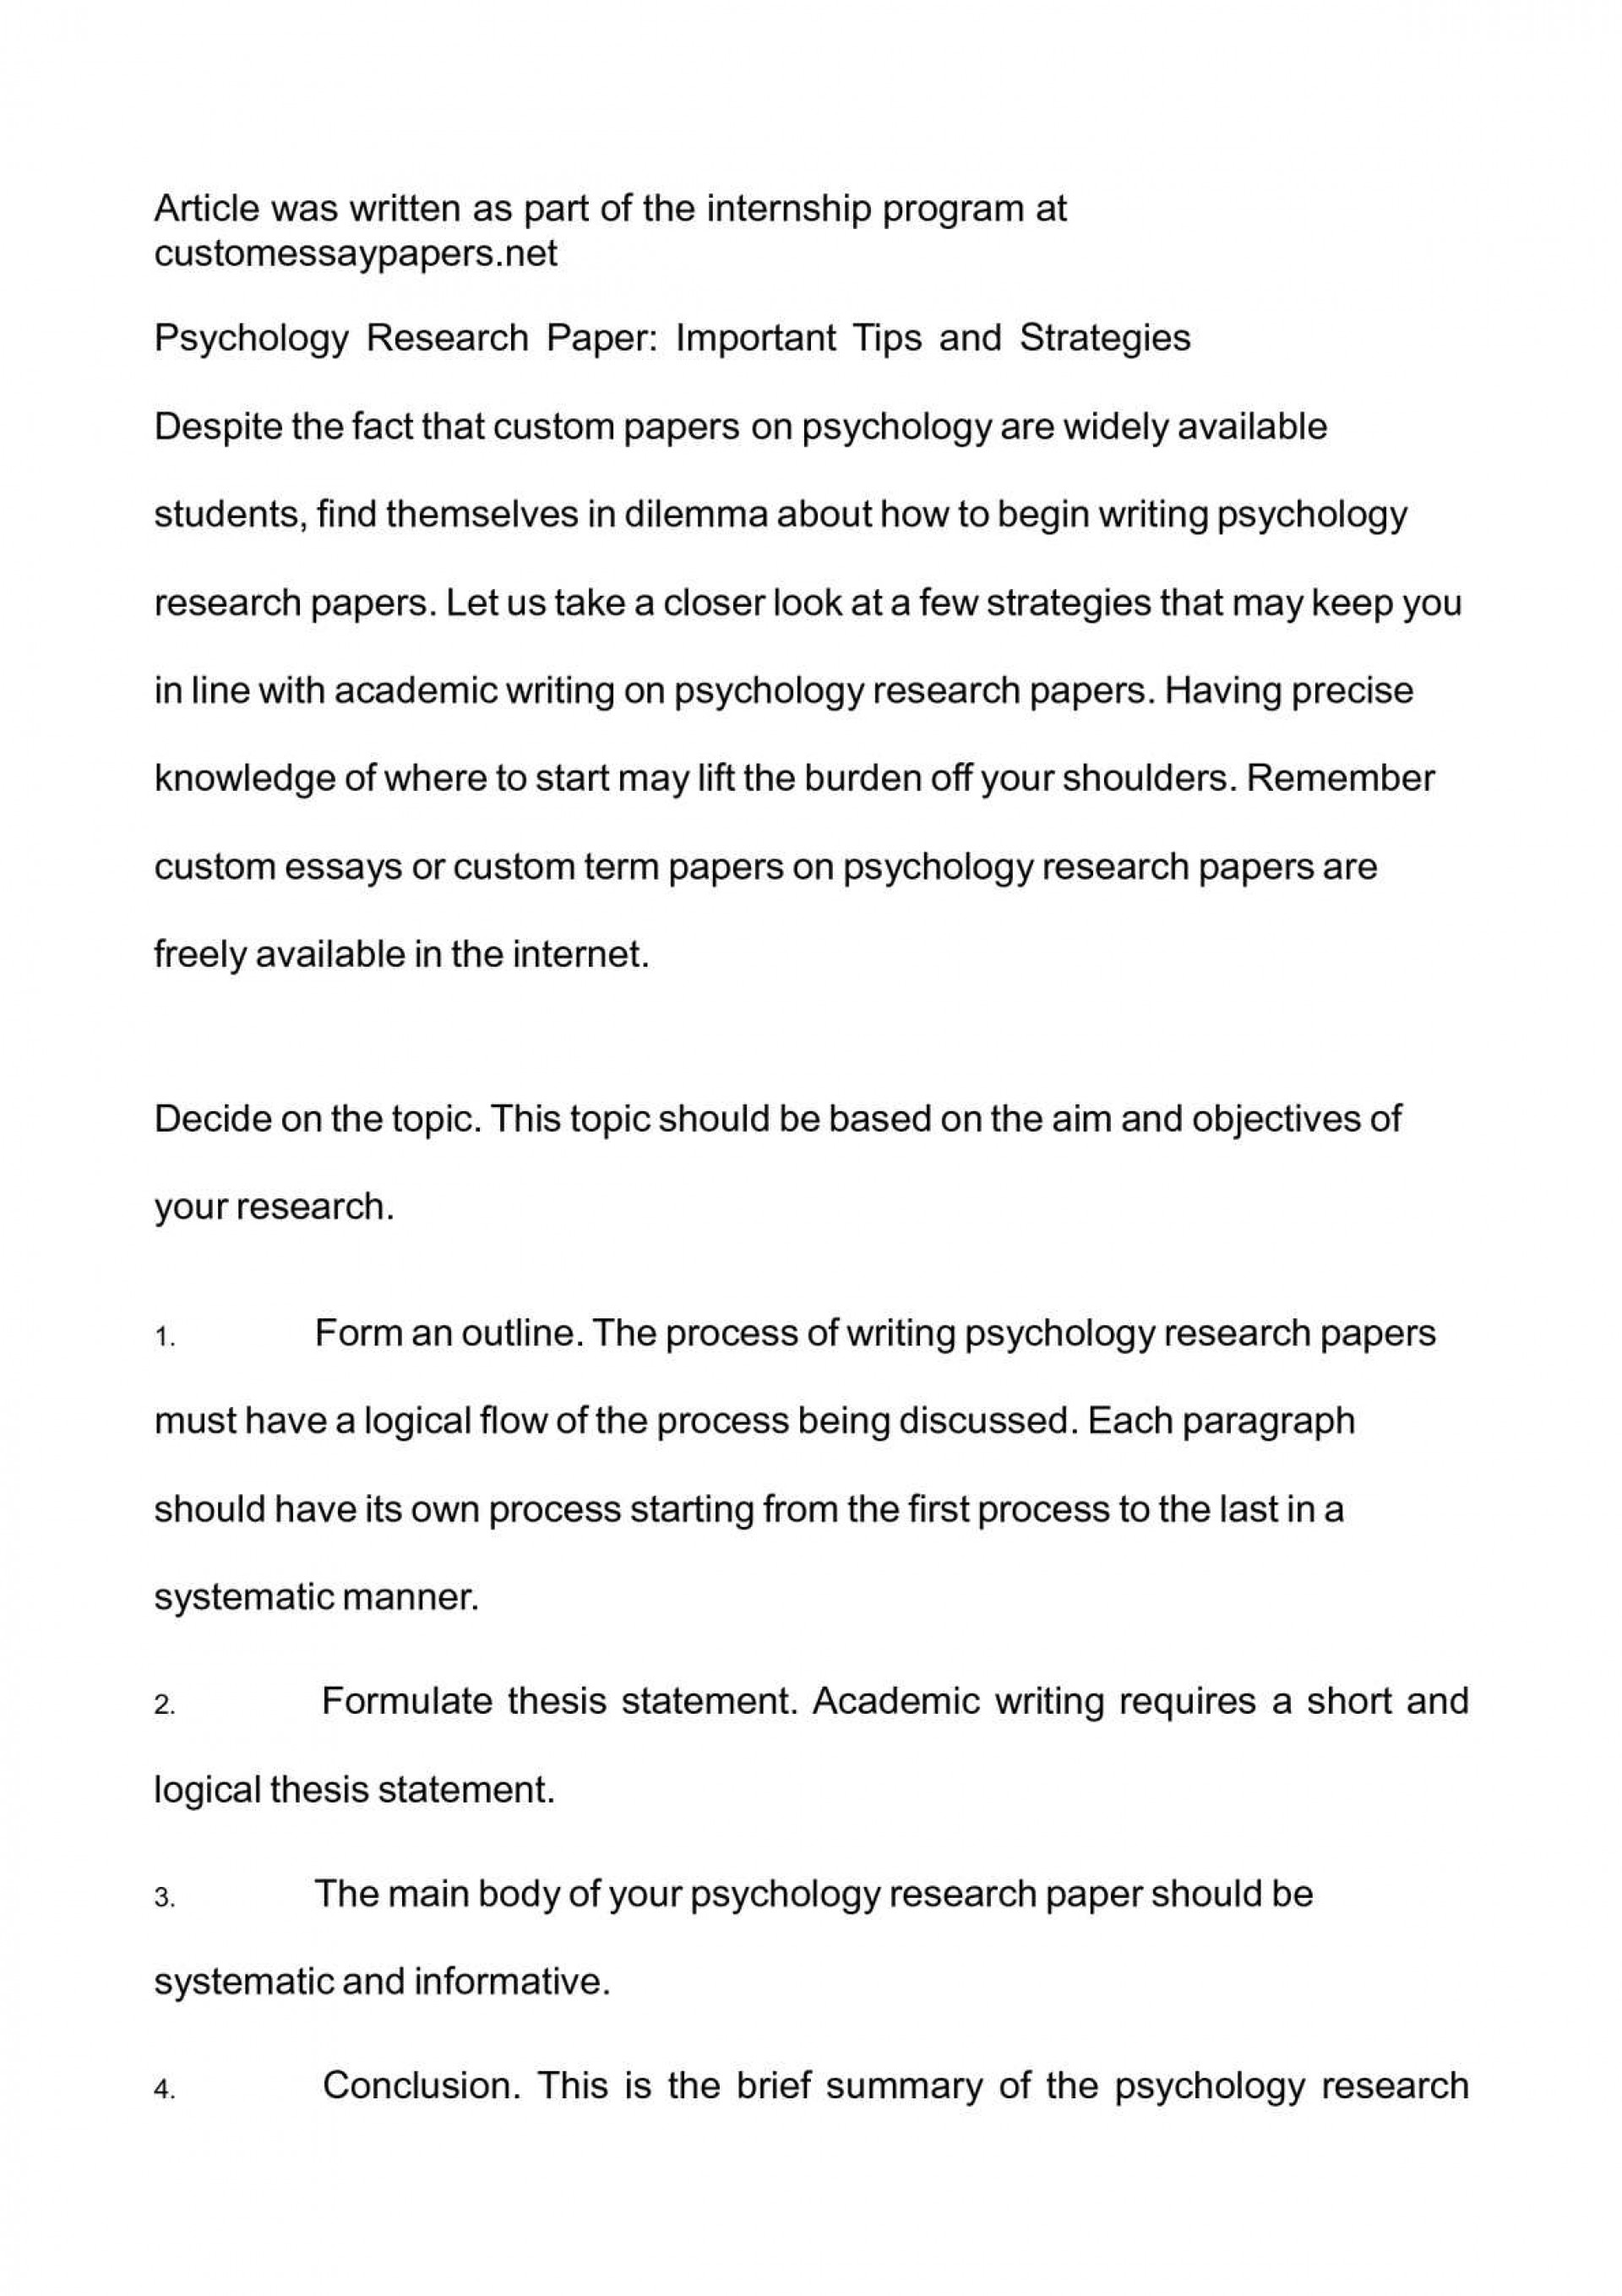 013 P1 Research Paper Sensational Psychology Outline Apa Abstract 1920